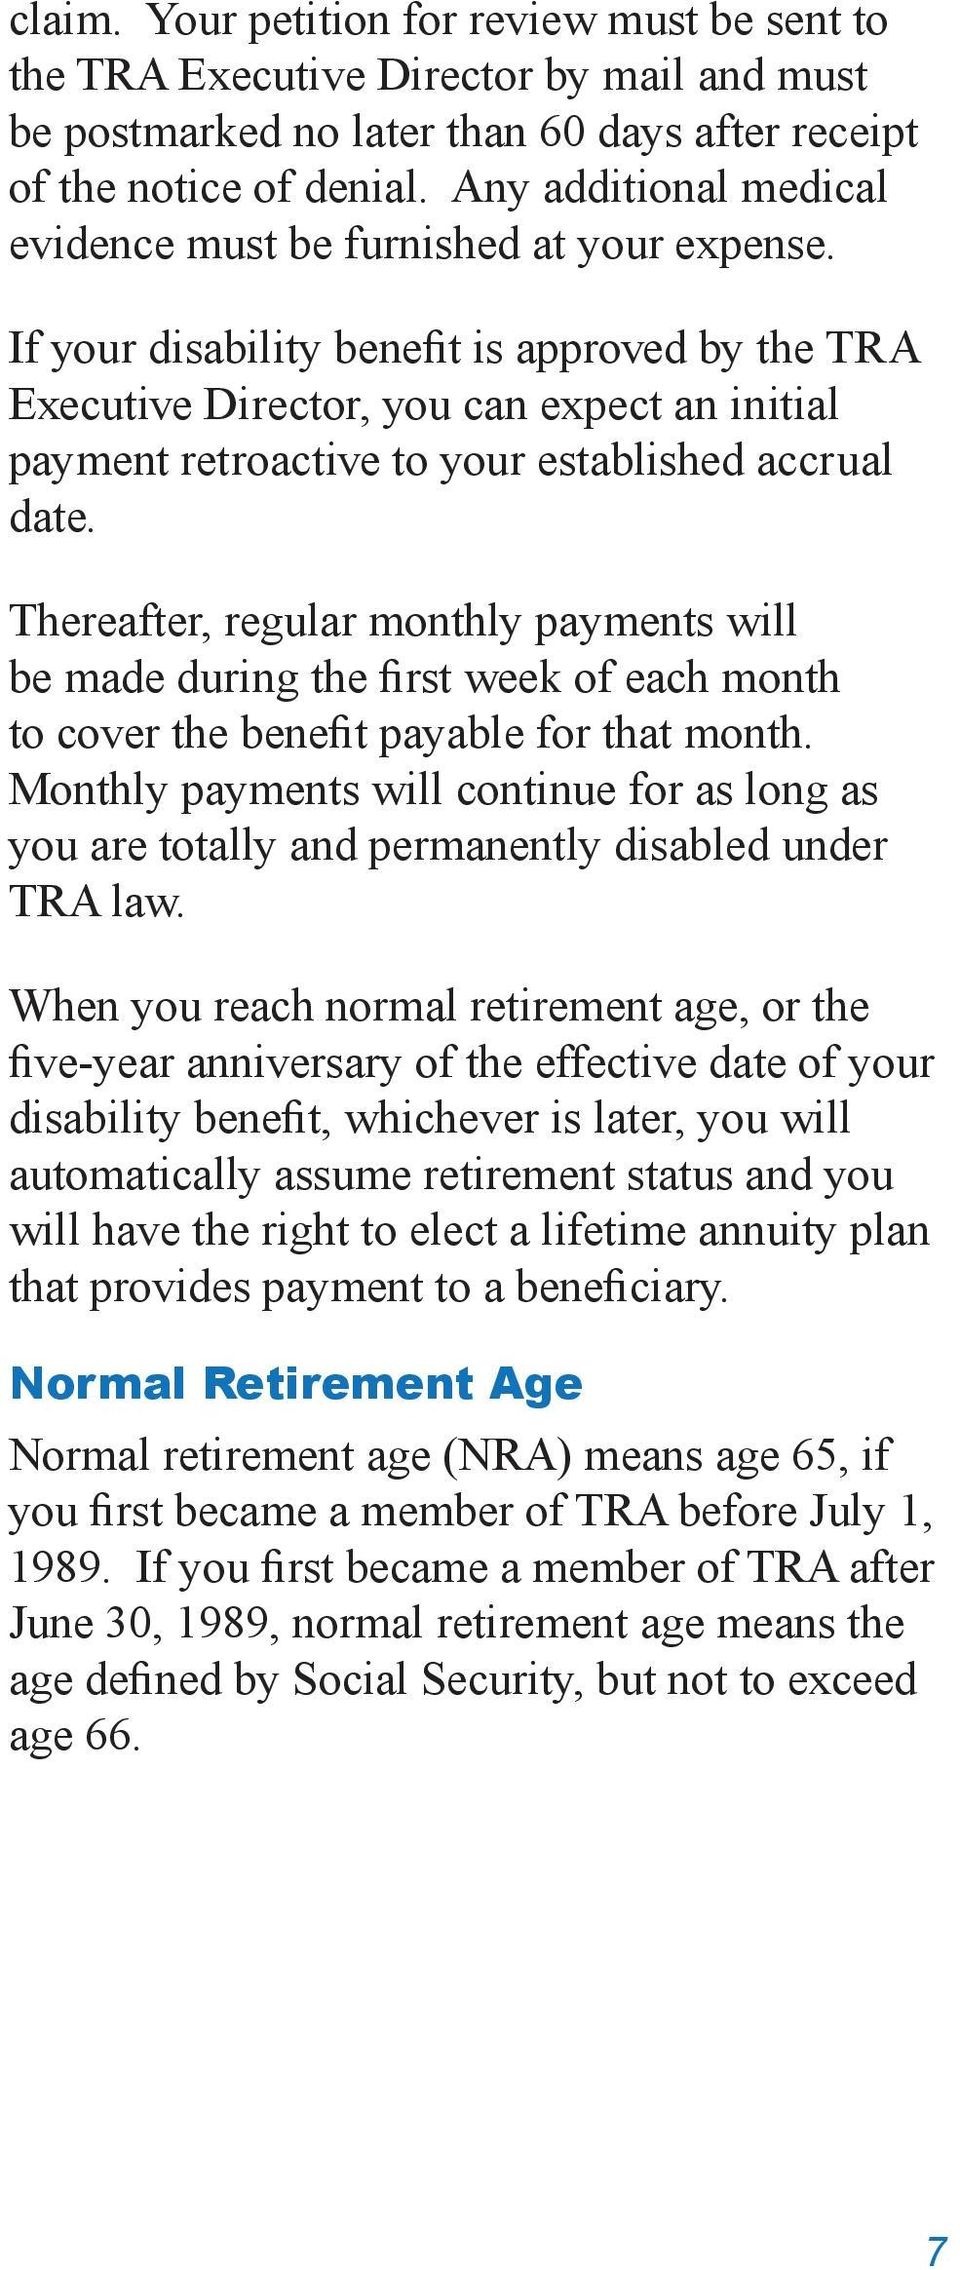 If your disability benefit is approved by the TRA Executive Director, you can expect an initial payment retroactive to your established accrual date.